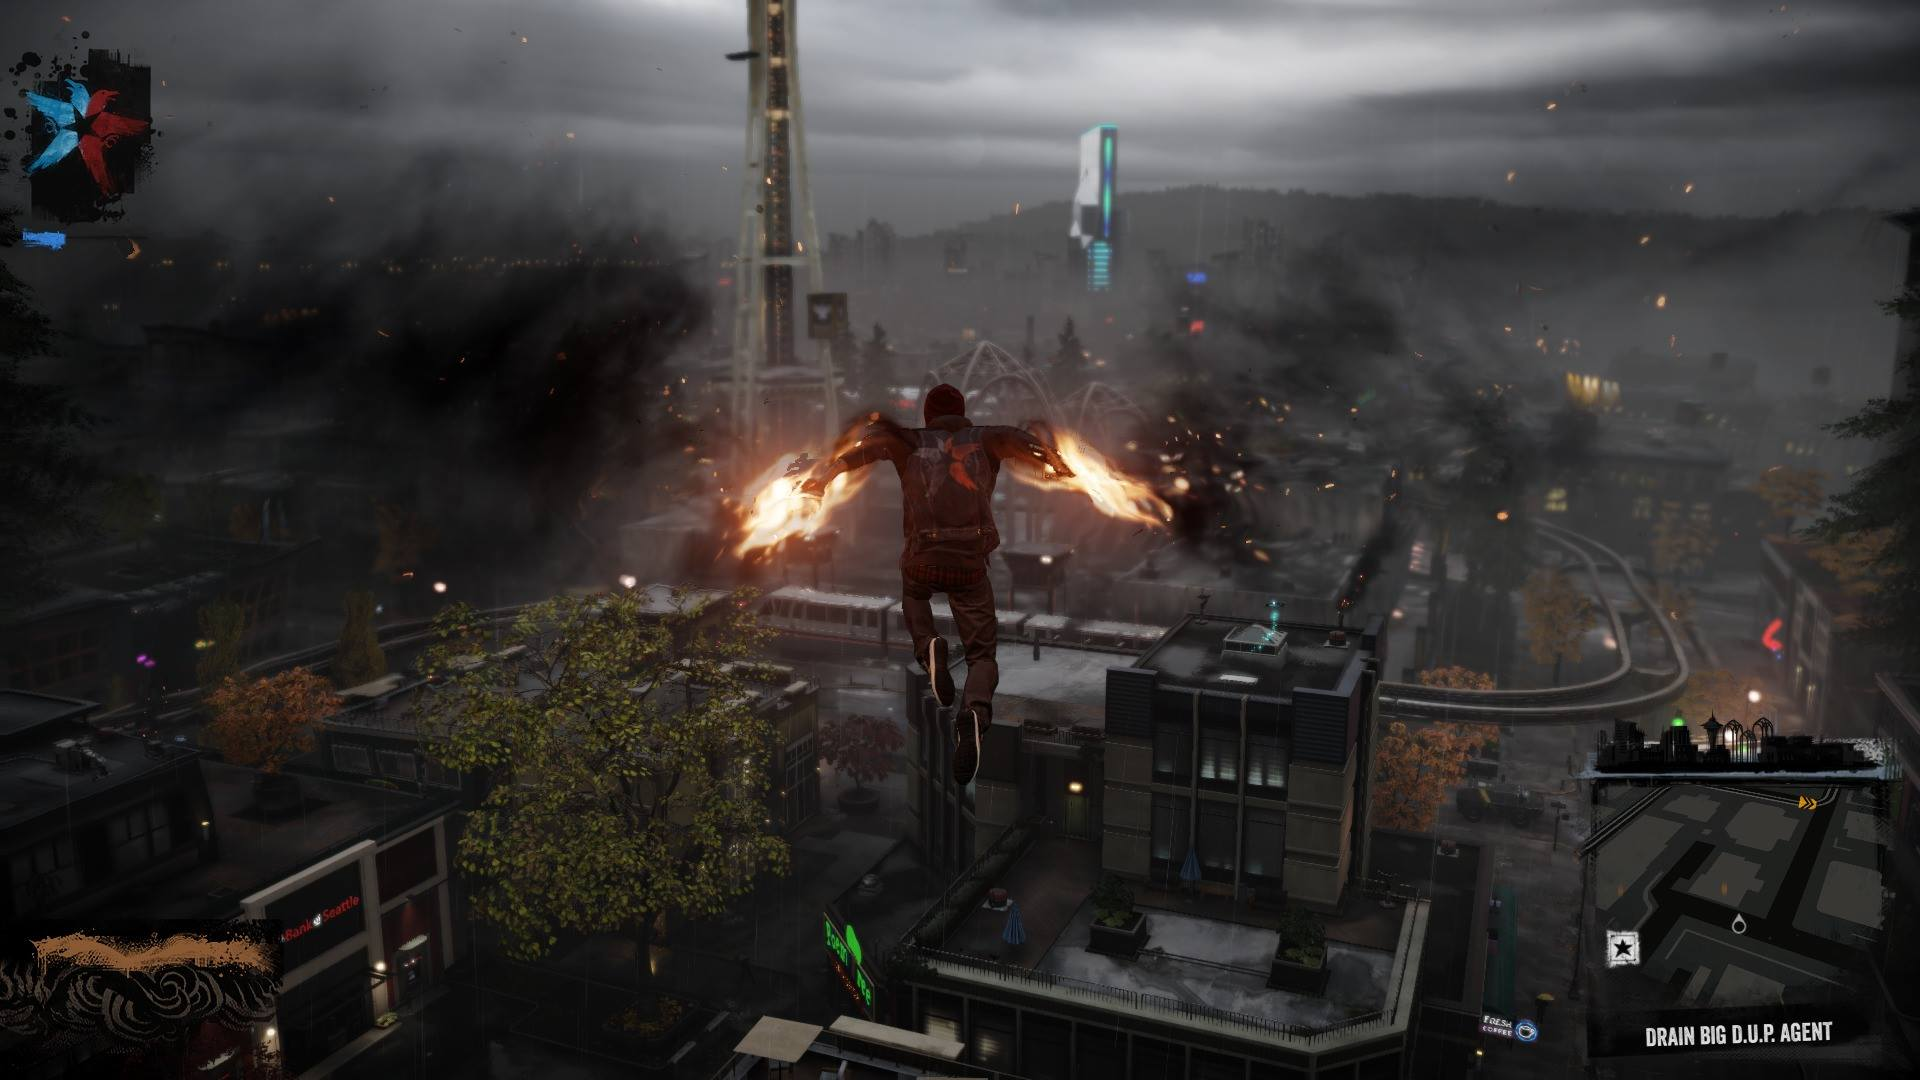 Devil May Cry Wallpaper Hd New Infamous Second Son In Game Gif Amp Screenshots Show